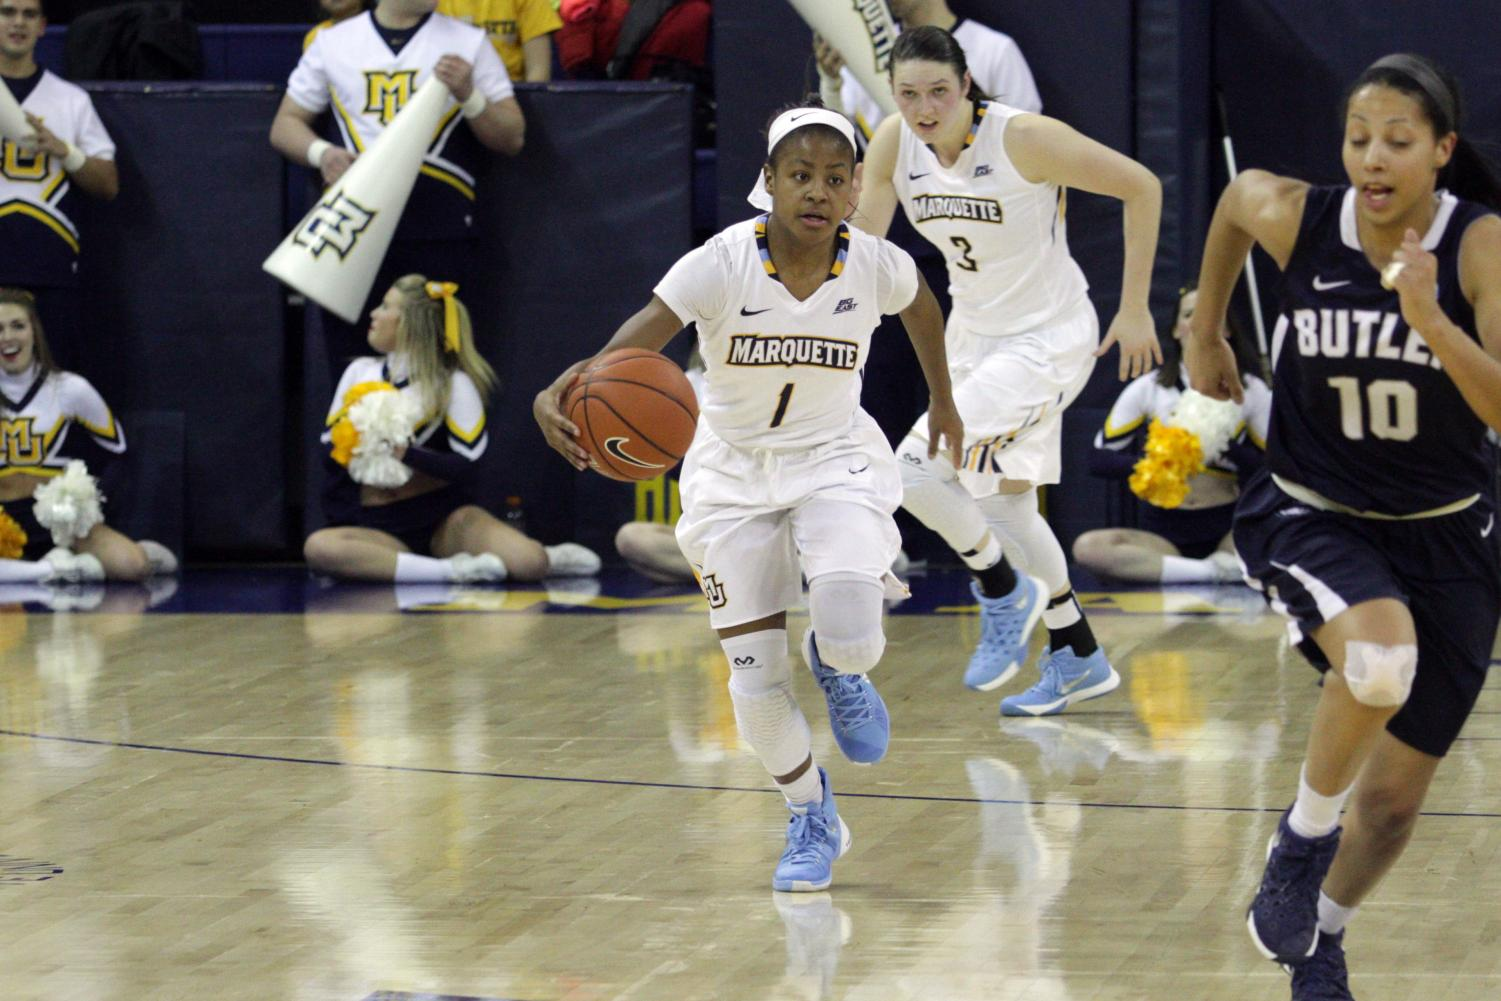 Danielle King scored a season-high 25 points to guide Marquette to a victory over Butler. (Photo by Maggie Bean via Marquette Athletics.)